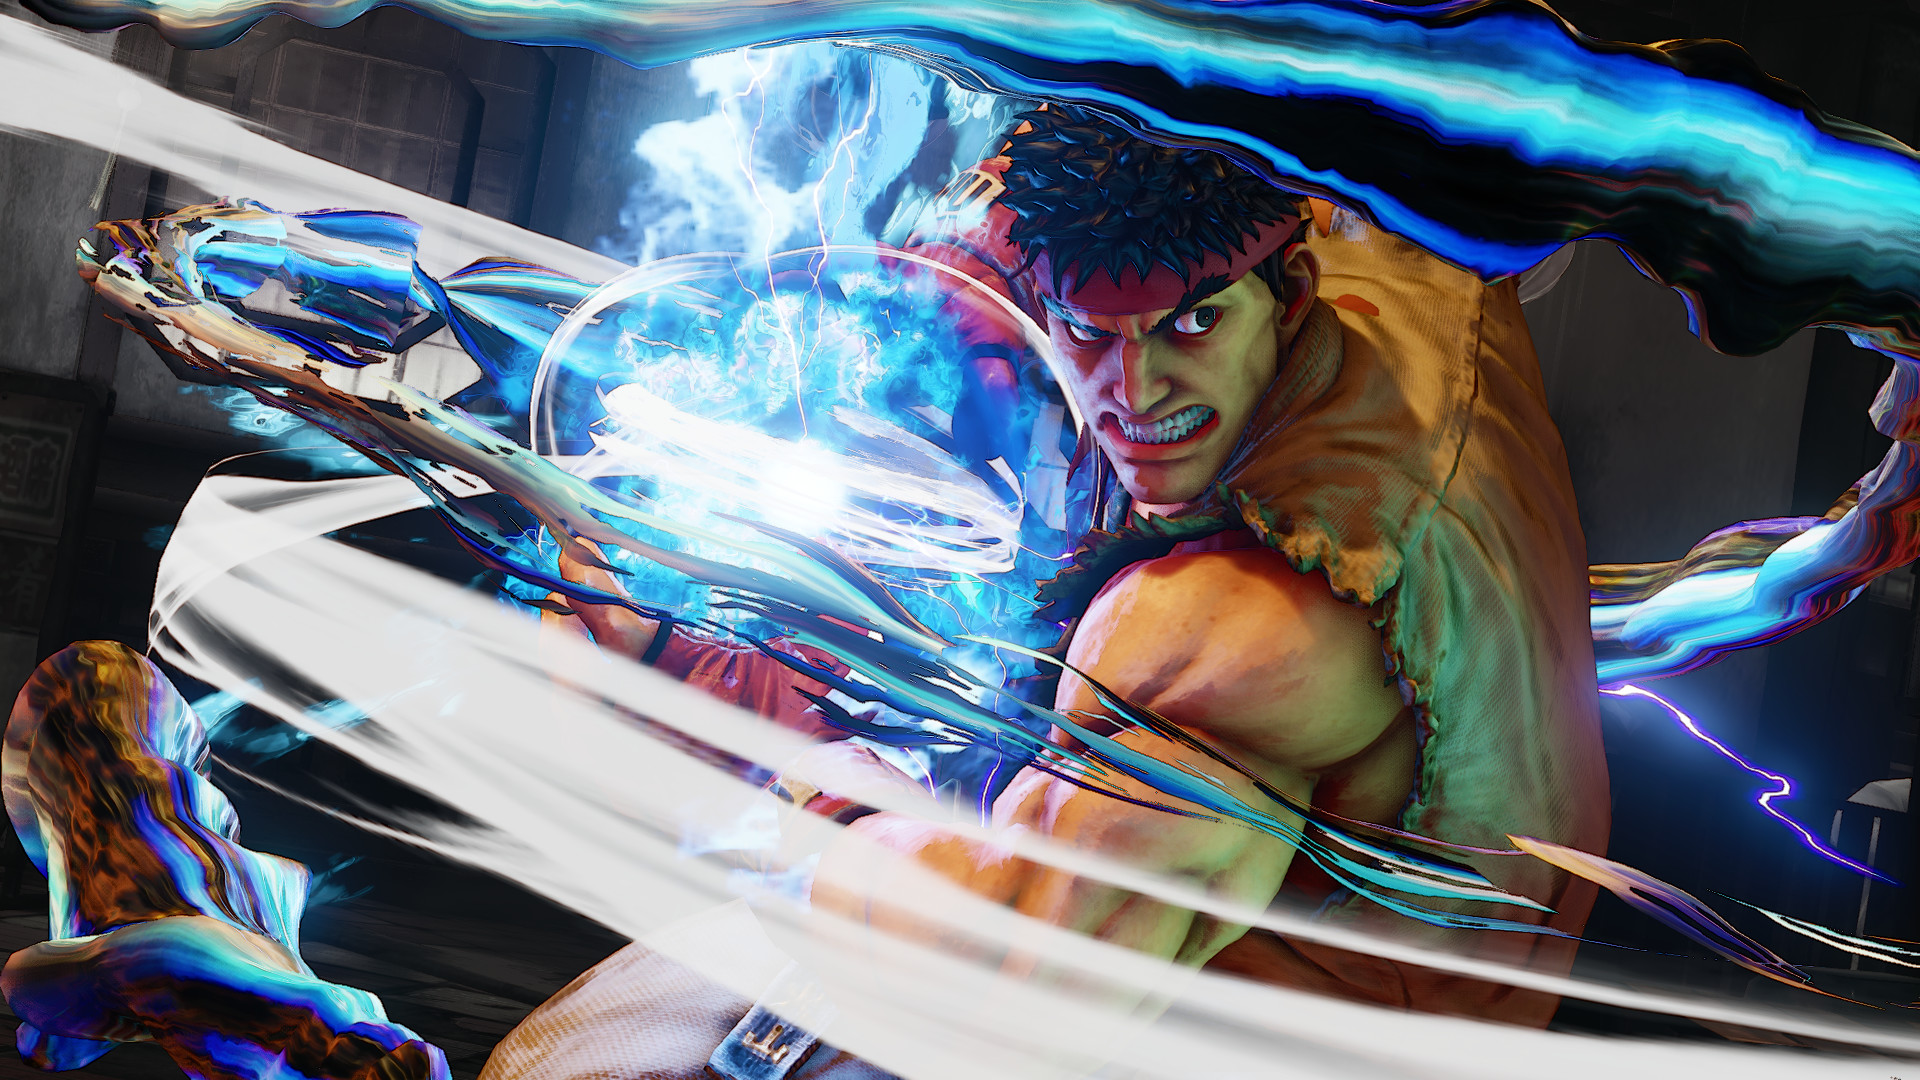 Street Fighter 5 pros forfeit Capcom Pro Tour matches over lag